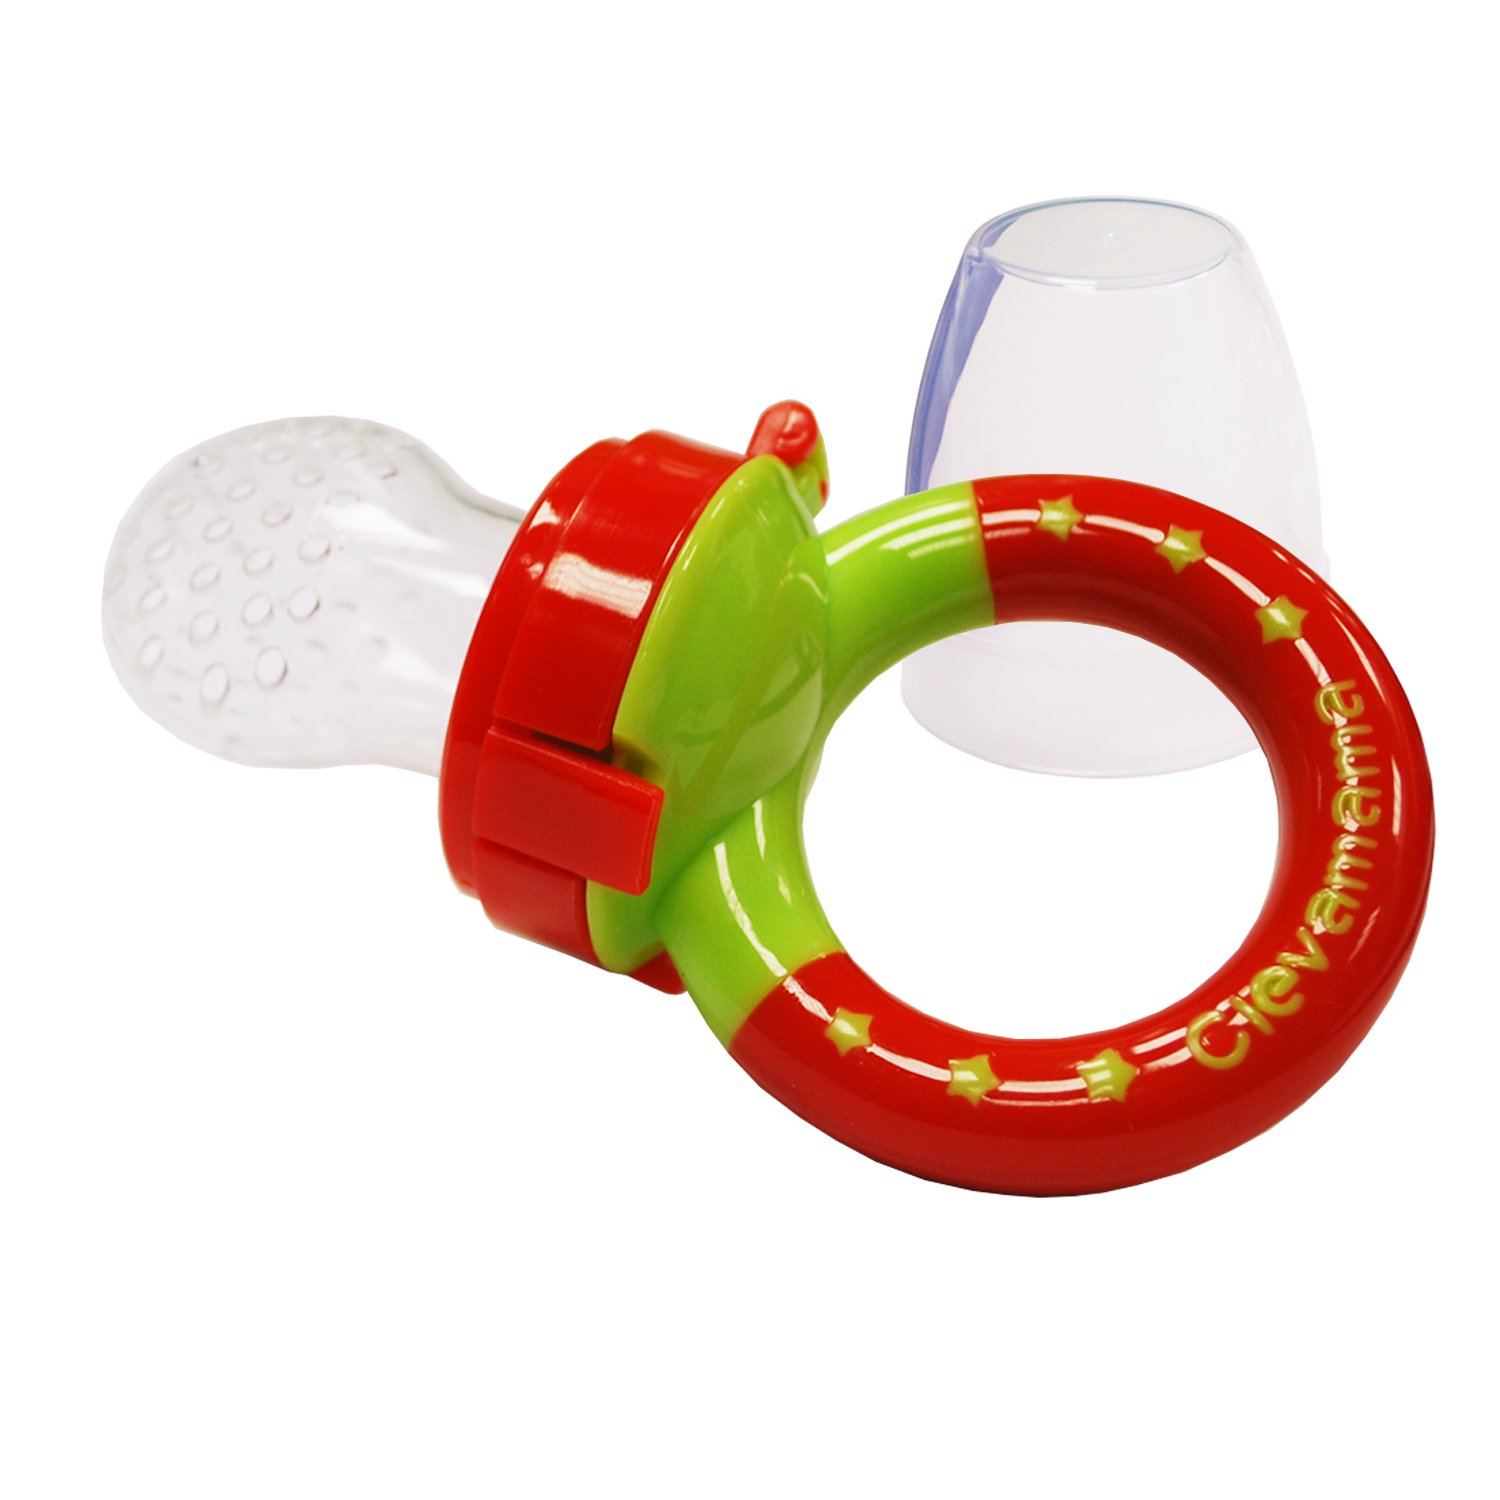 Clevamama Baby Fruit Feeder Clevafeed - Fresh Food Pacifier with Extra Silicone Teat +6 Months 7012